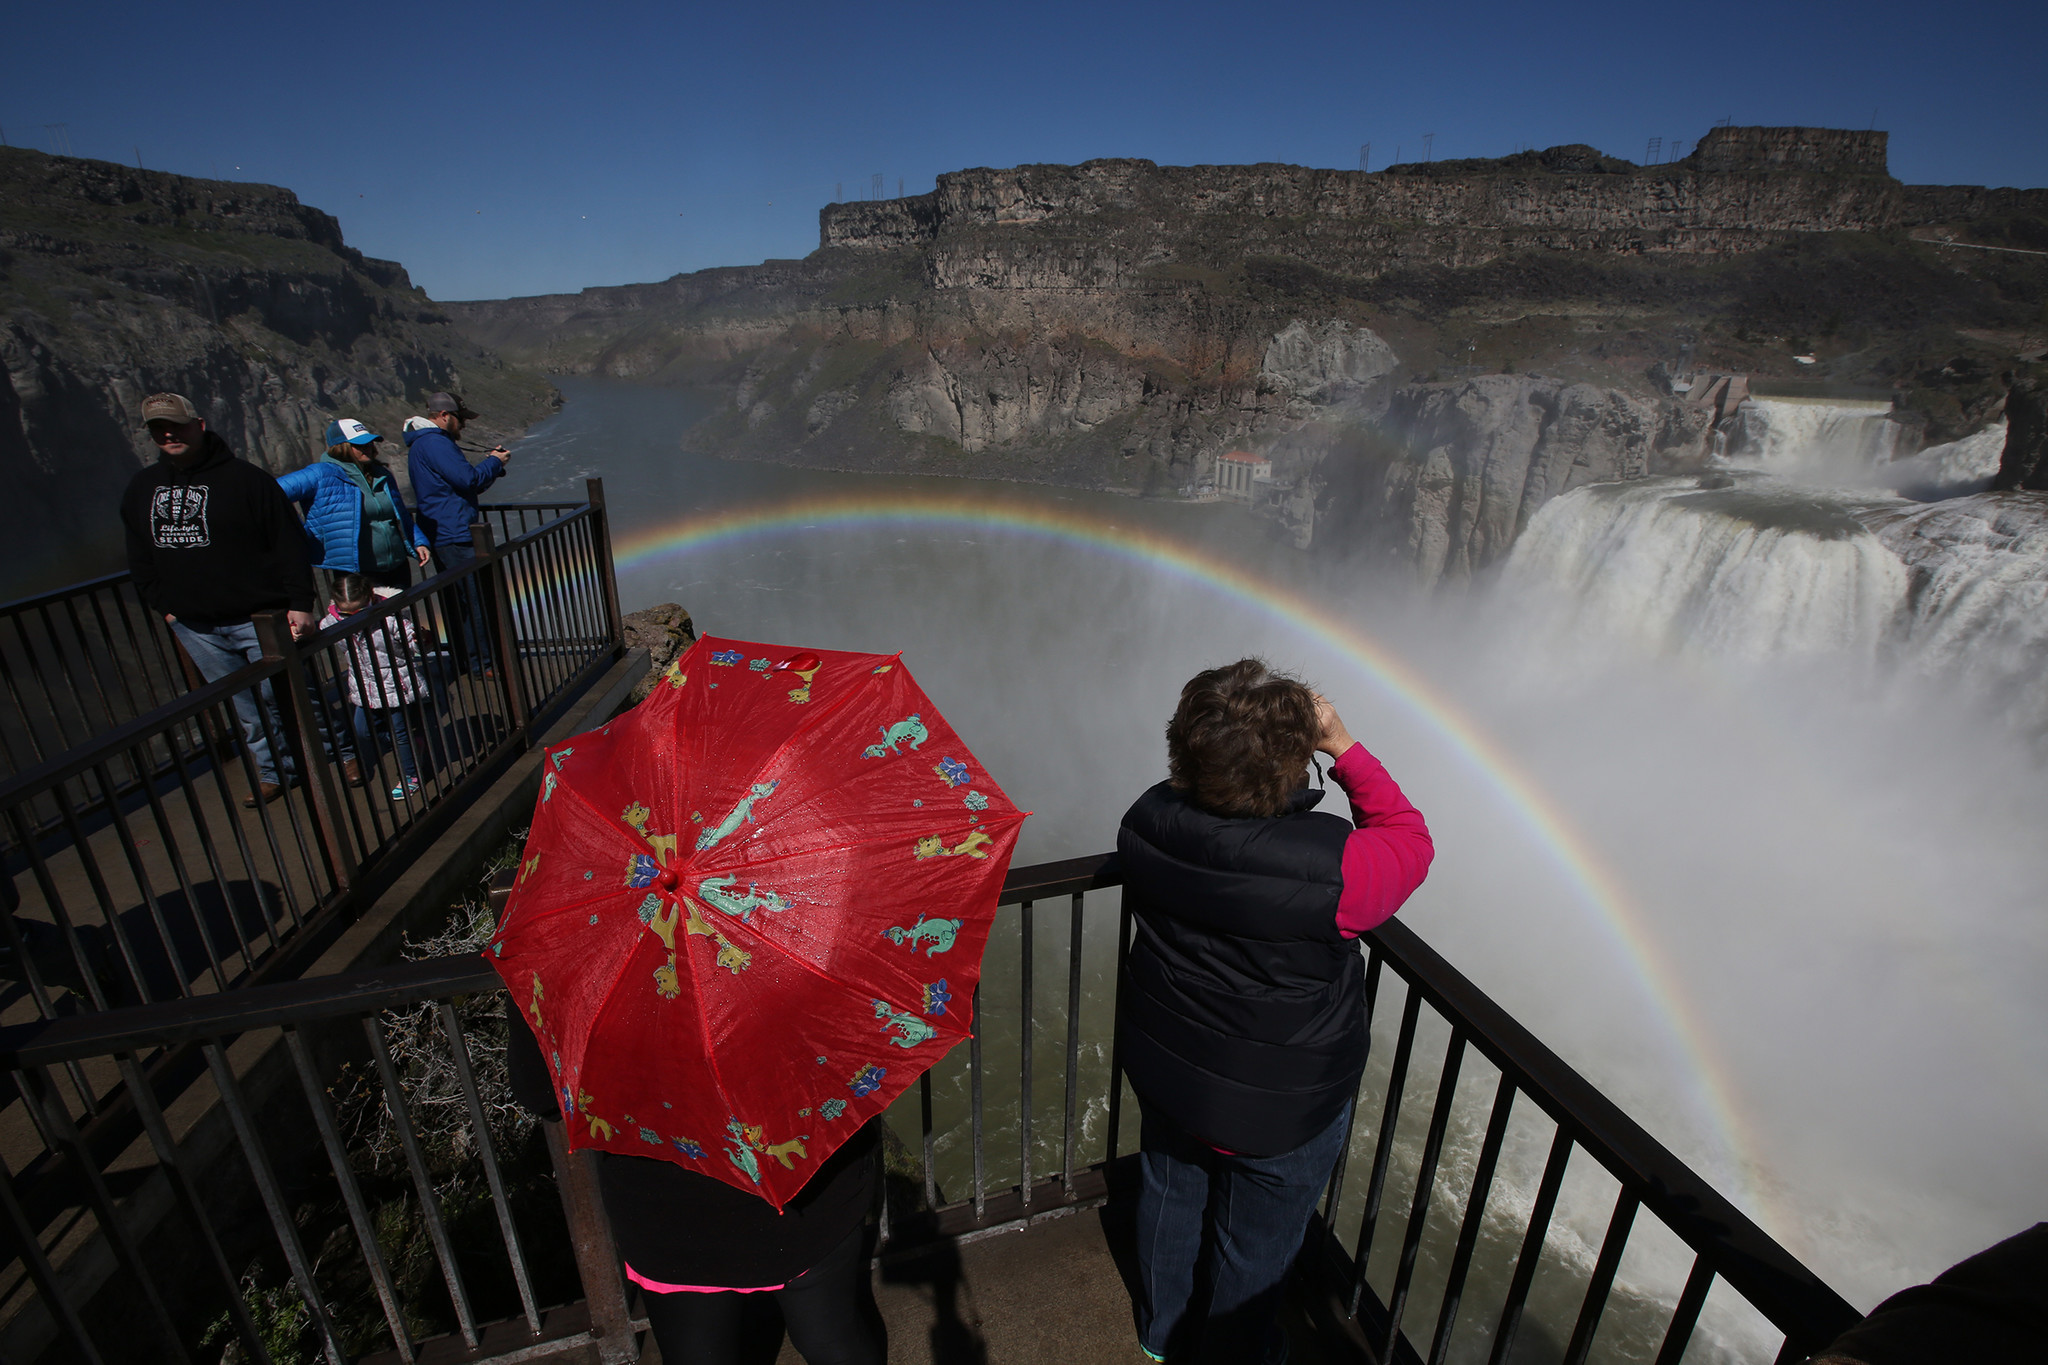 Visitors view a rainbow in the mist from Shoshone Falls on the Snake River.